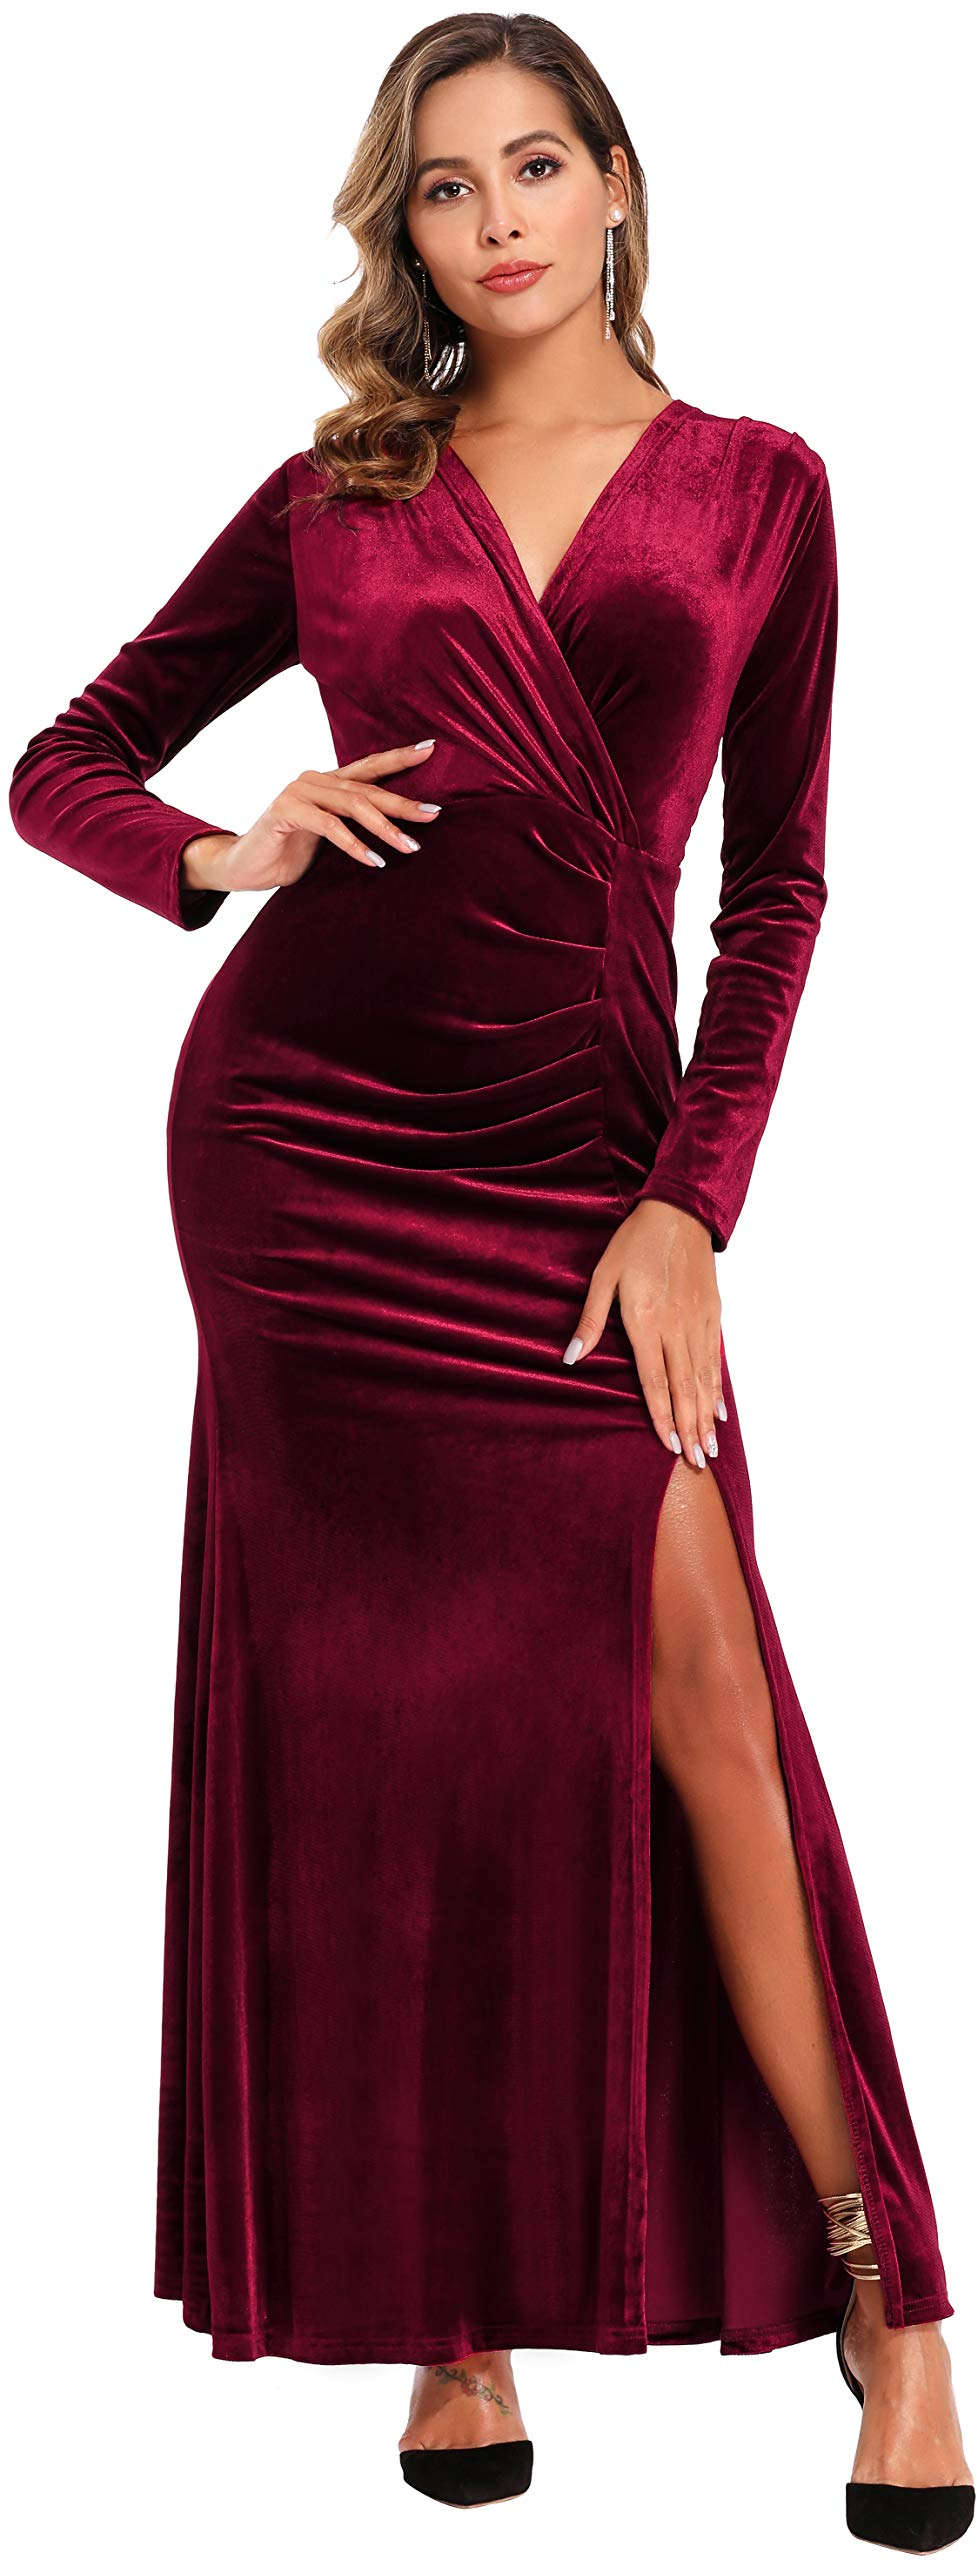 Ababalaya Women's 90s Retro Velvet Long Bodycon Side Slit Formal Evening Gown,Burgundy,S - wiihuu